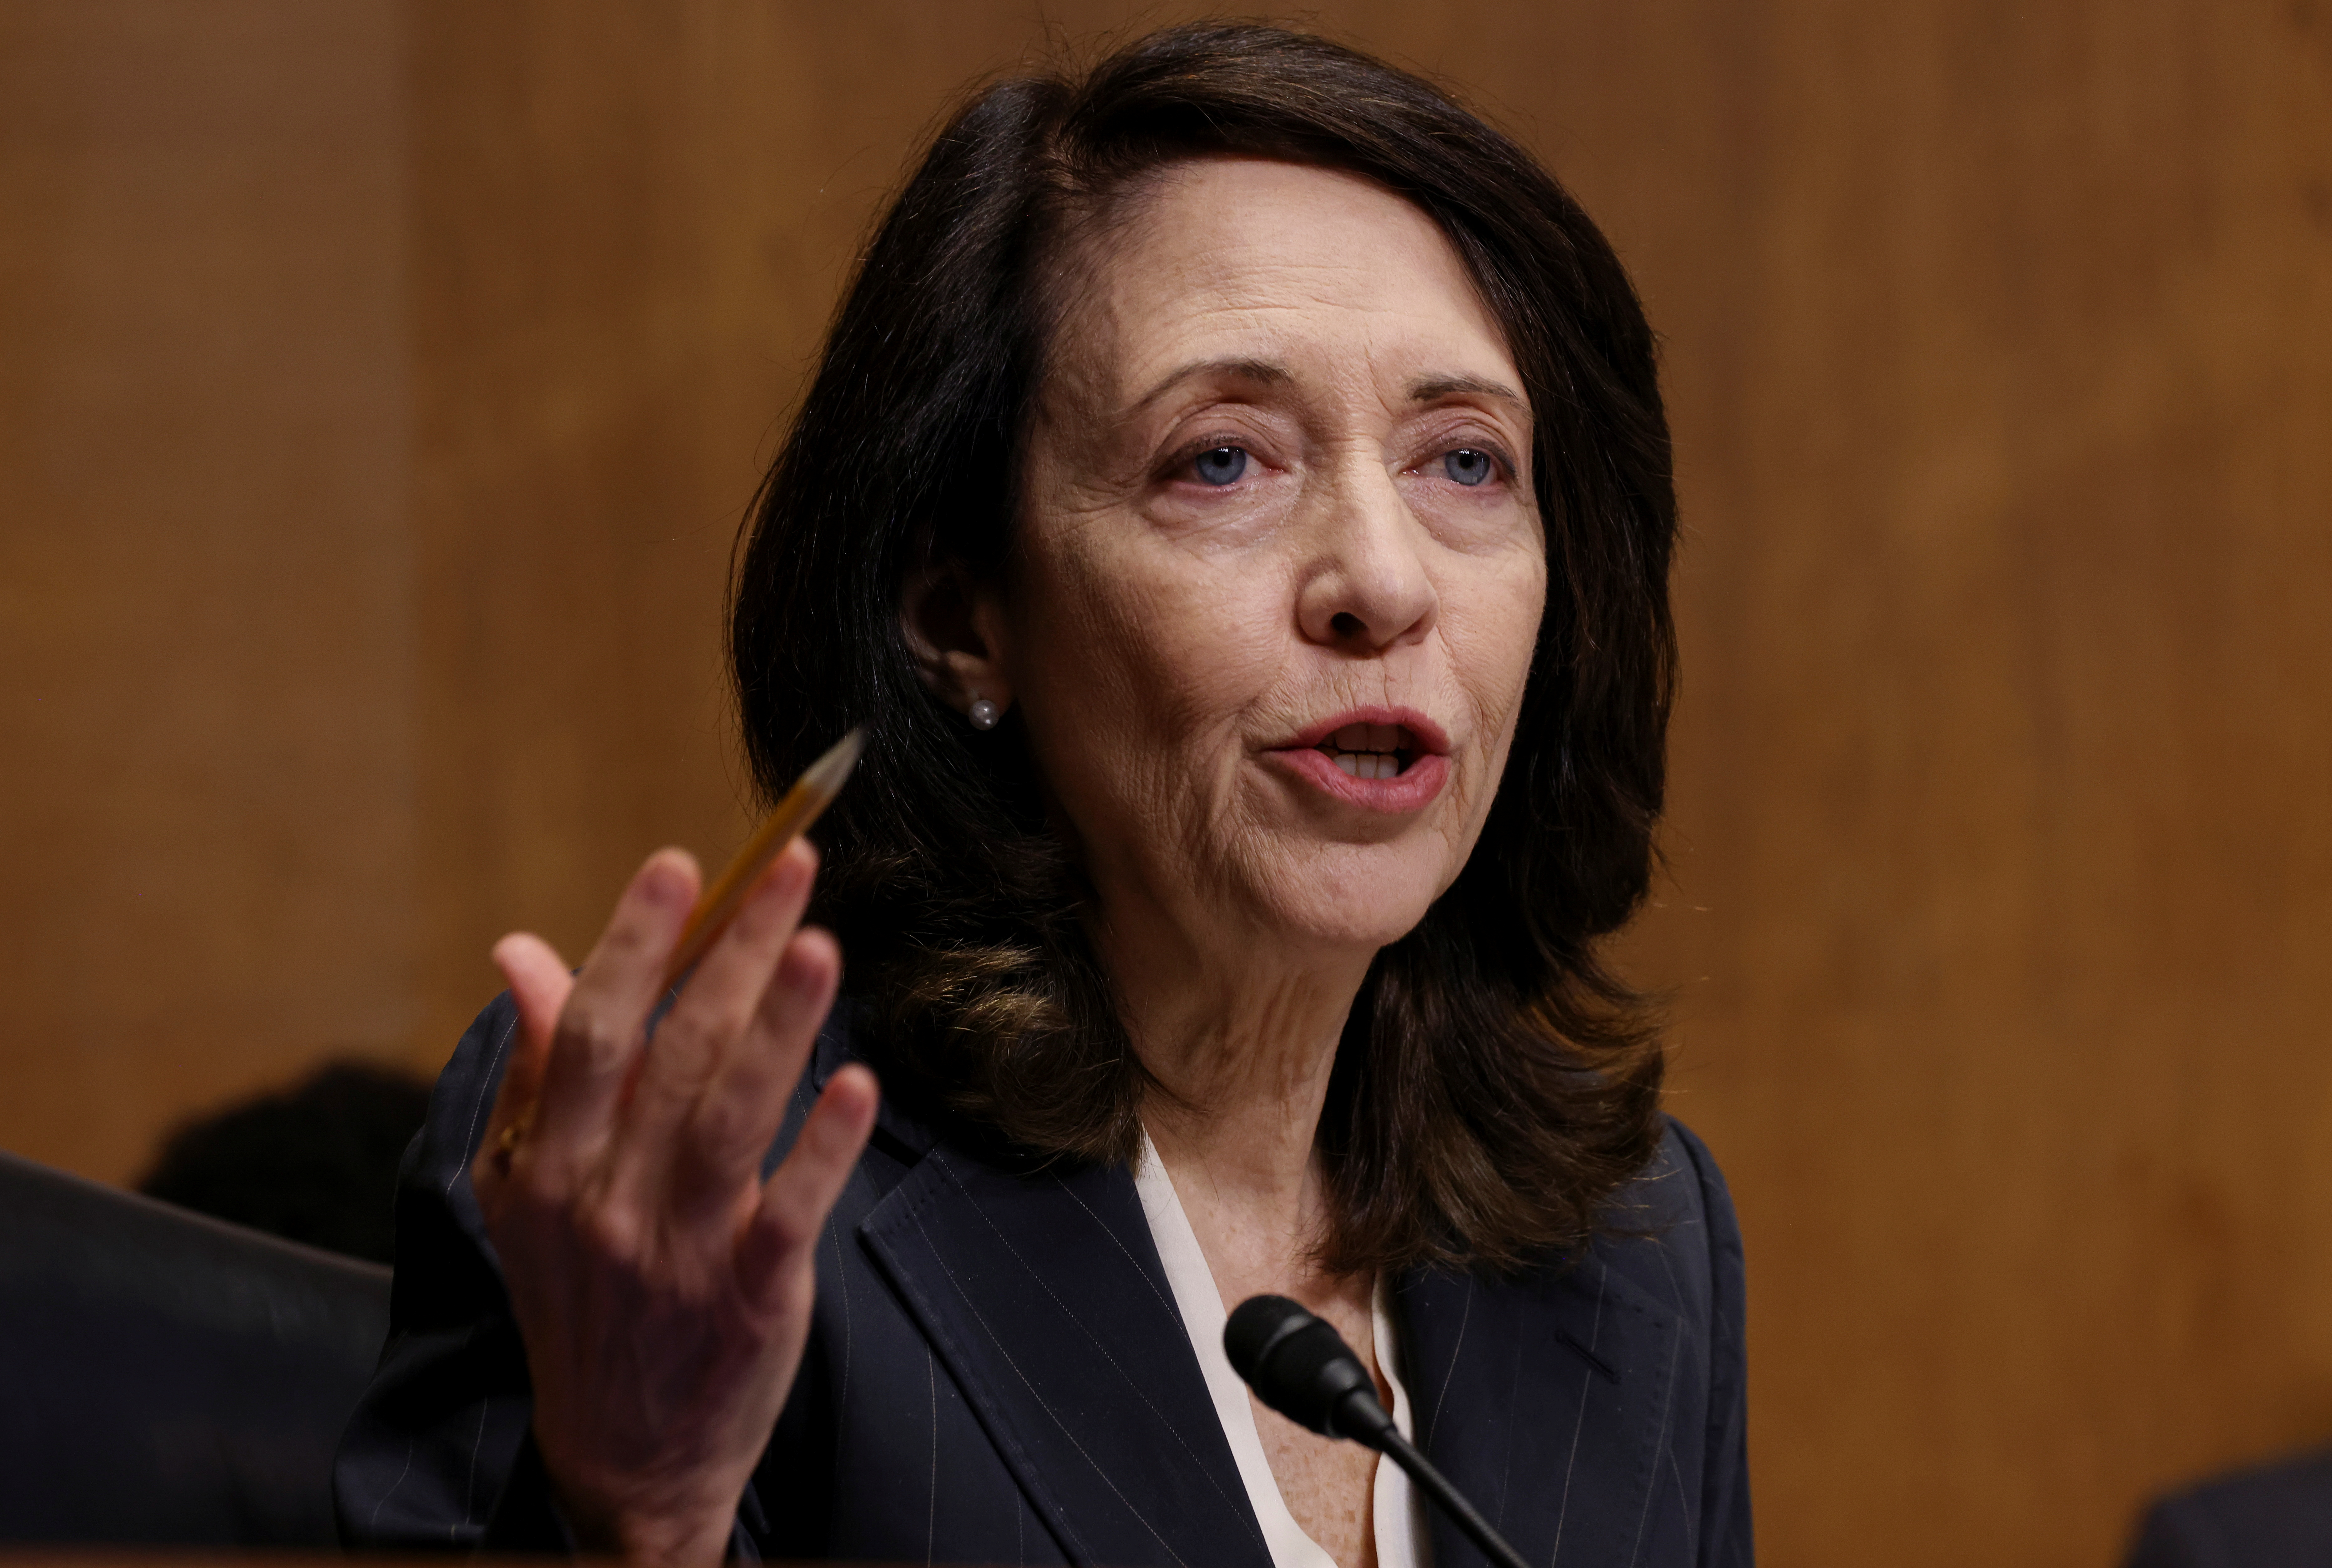 U.S. Senator Maria Cantwell (D-WA) speaks during a Senate Finance Committee hearing on the IRS budget request on Capitol Hill in Washington U.S., June 8, 2021. REUTERS/Evelyn Hockstein/Pool